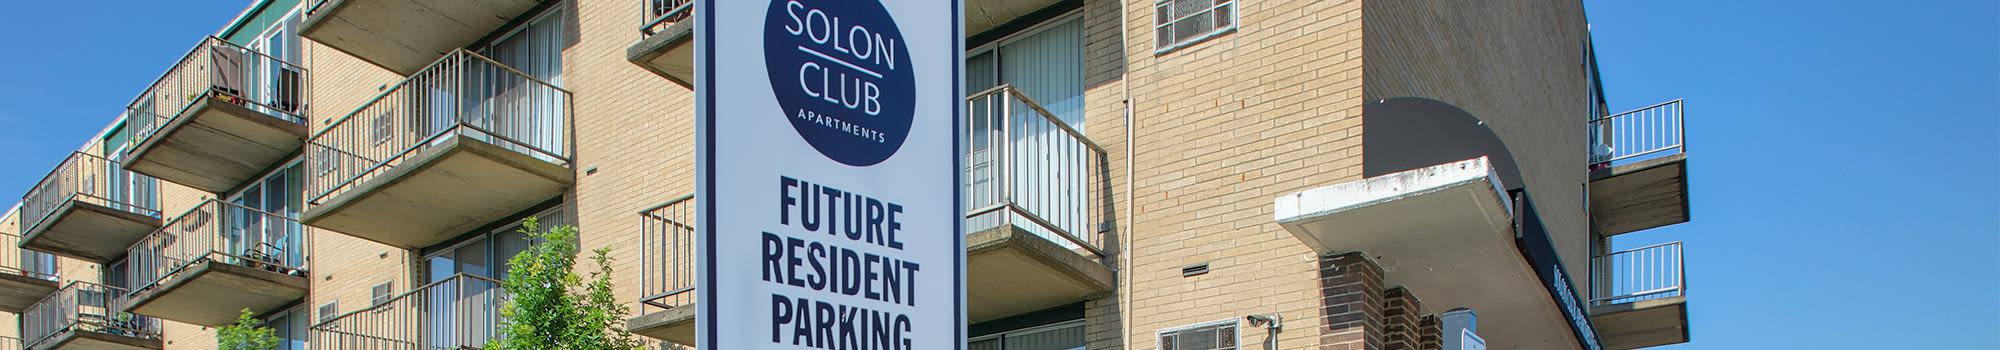 Solon Club Apartments welcomes pets